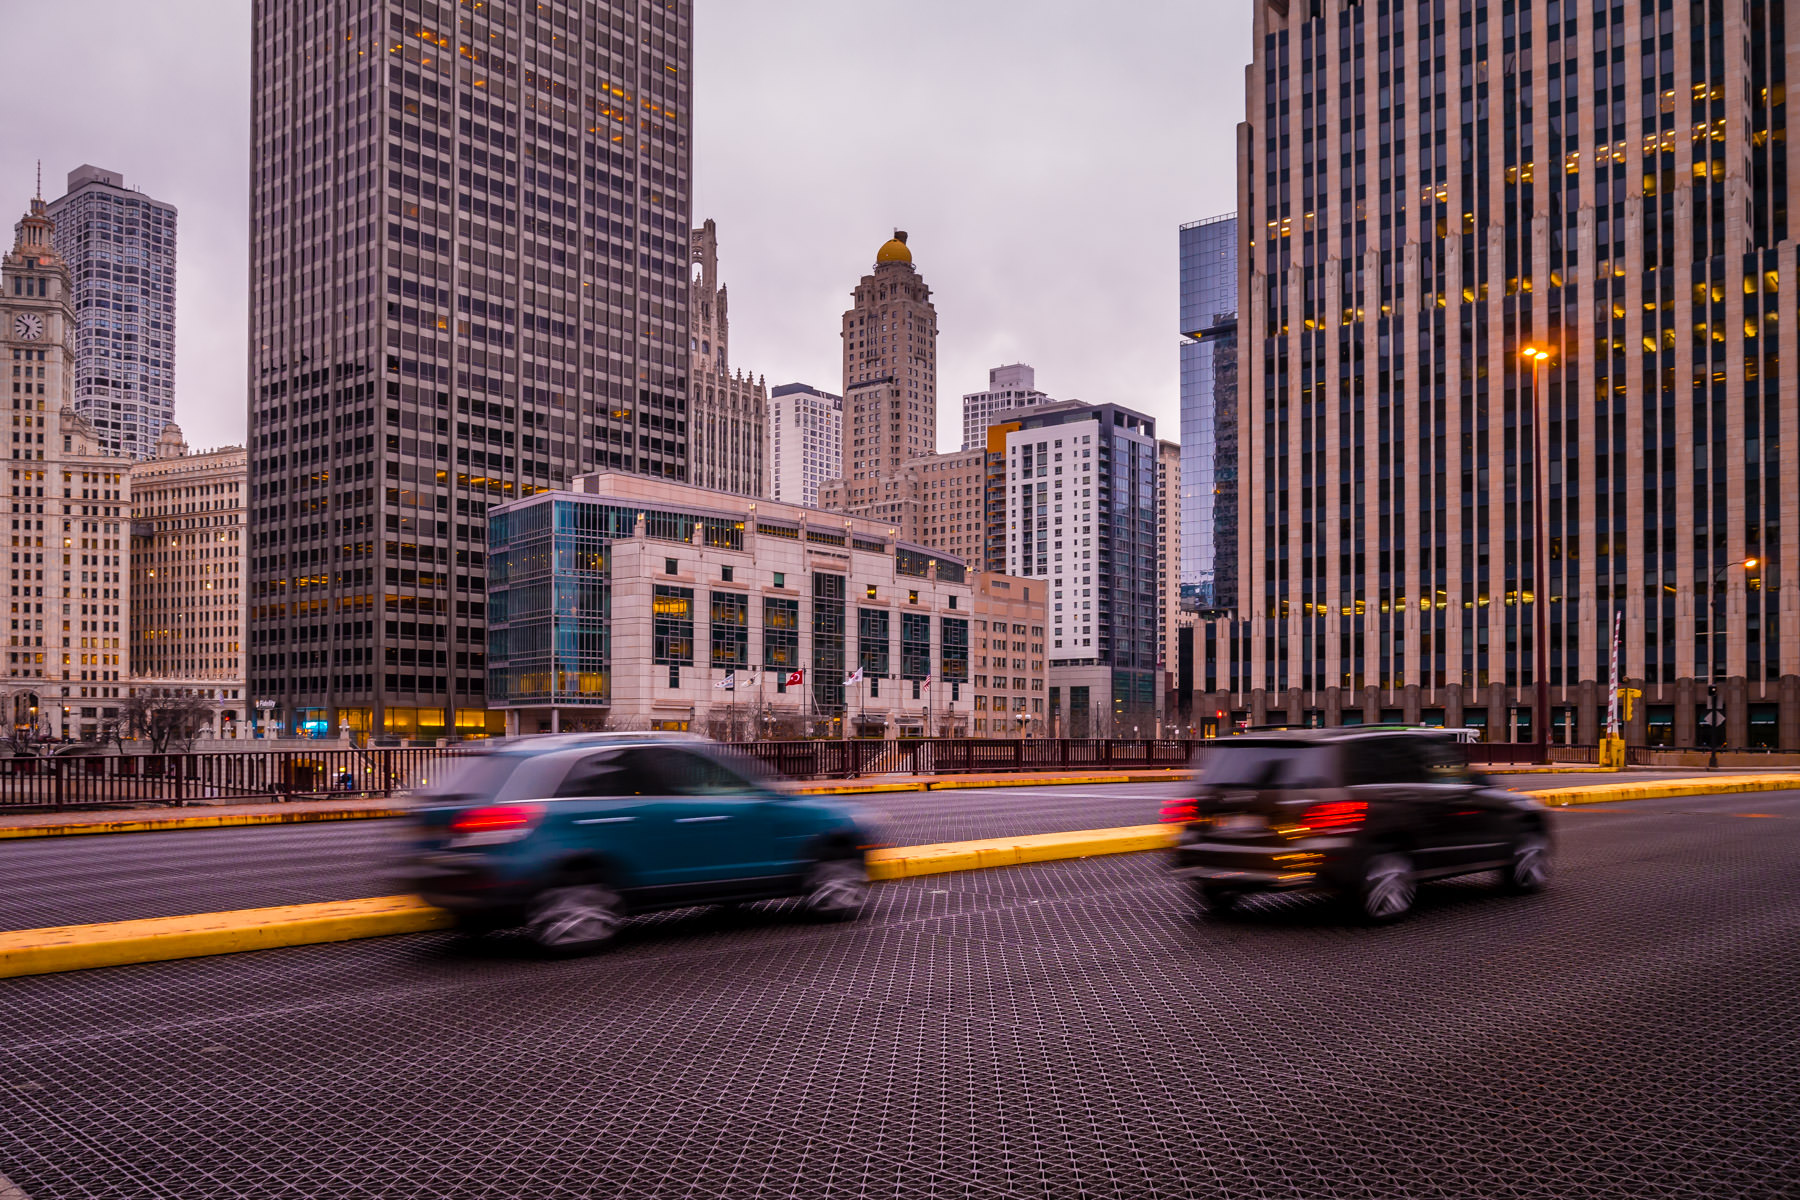 Cars cross Chicago's Columbus Drive bridge as the city rises in the background on a cold, late-winter evening.